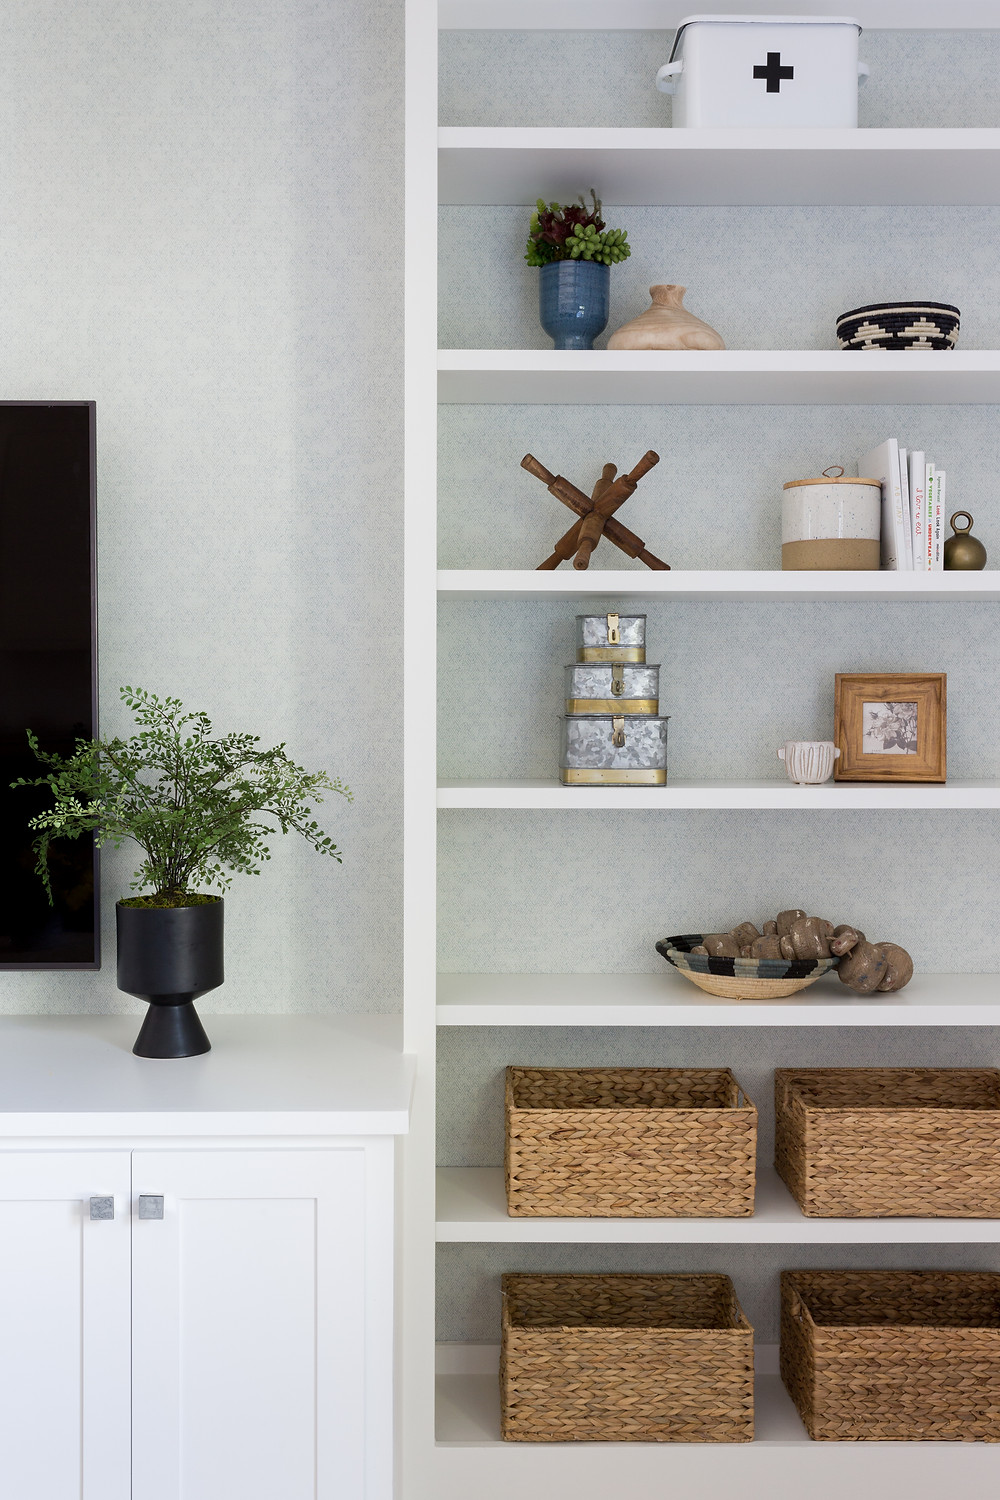 built-in shelves with wallpaper